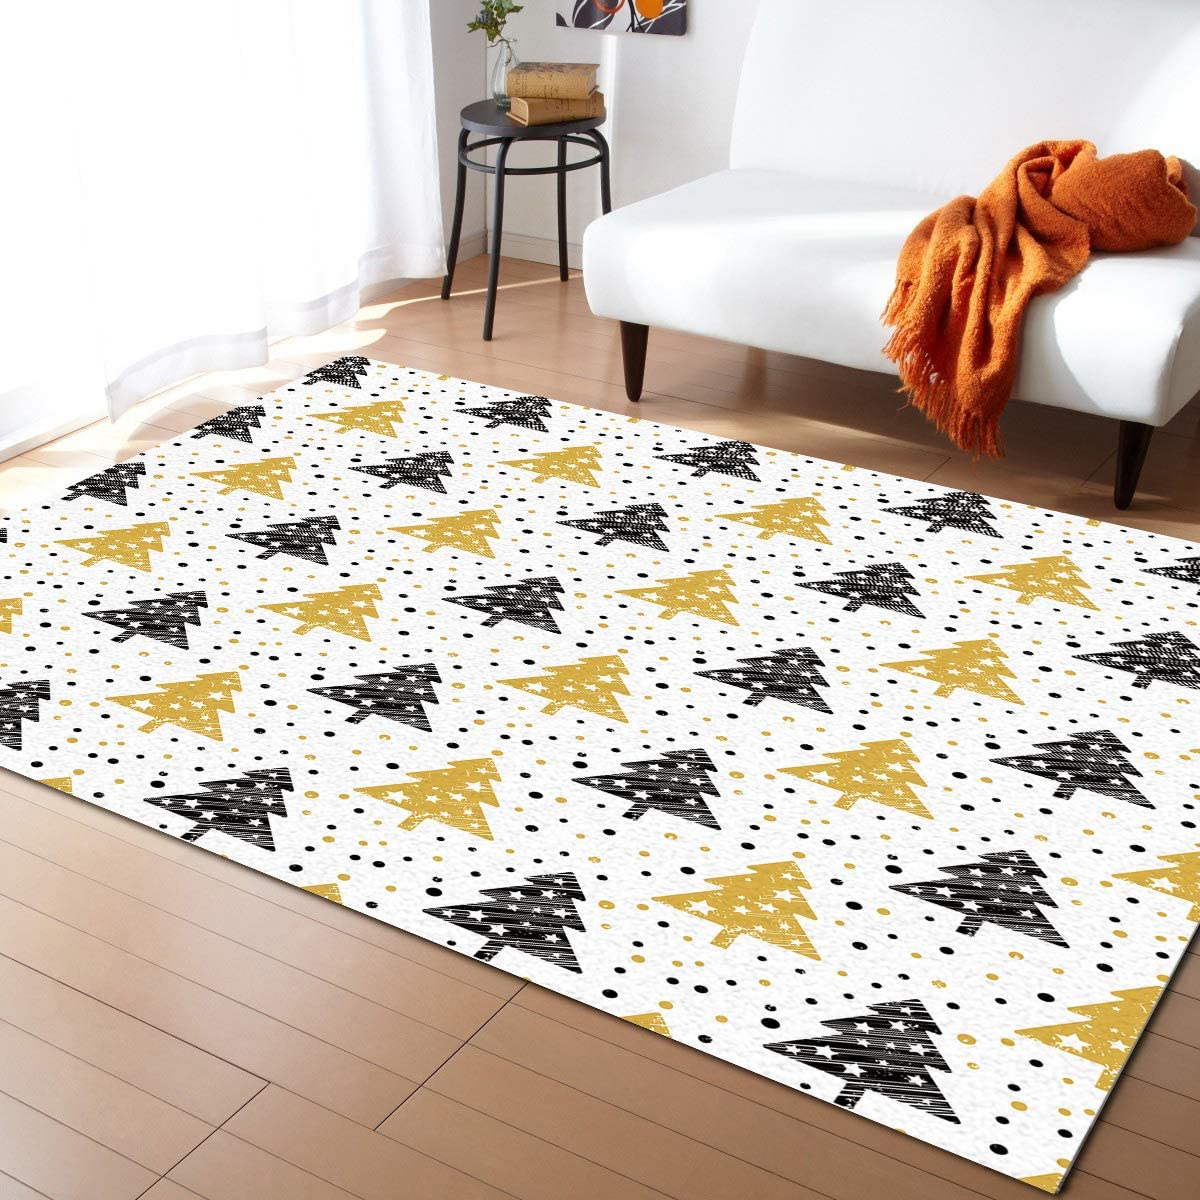 Prime Leader Free shipping / New Modern Contemporary Area Room Winte for 2021new shipping free Rug Living